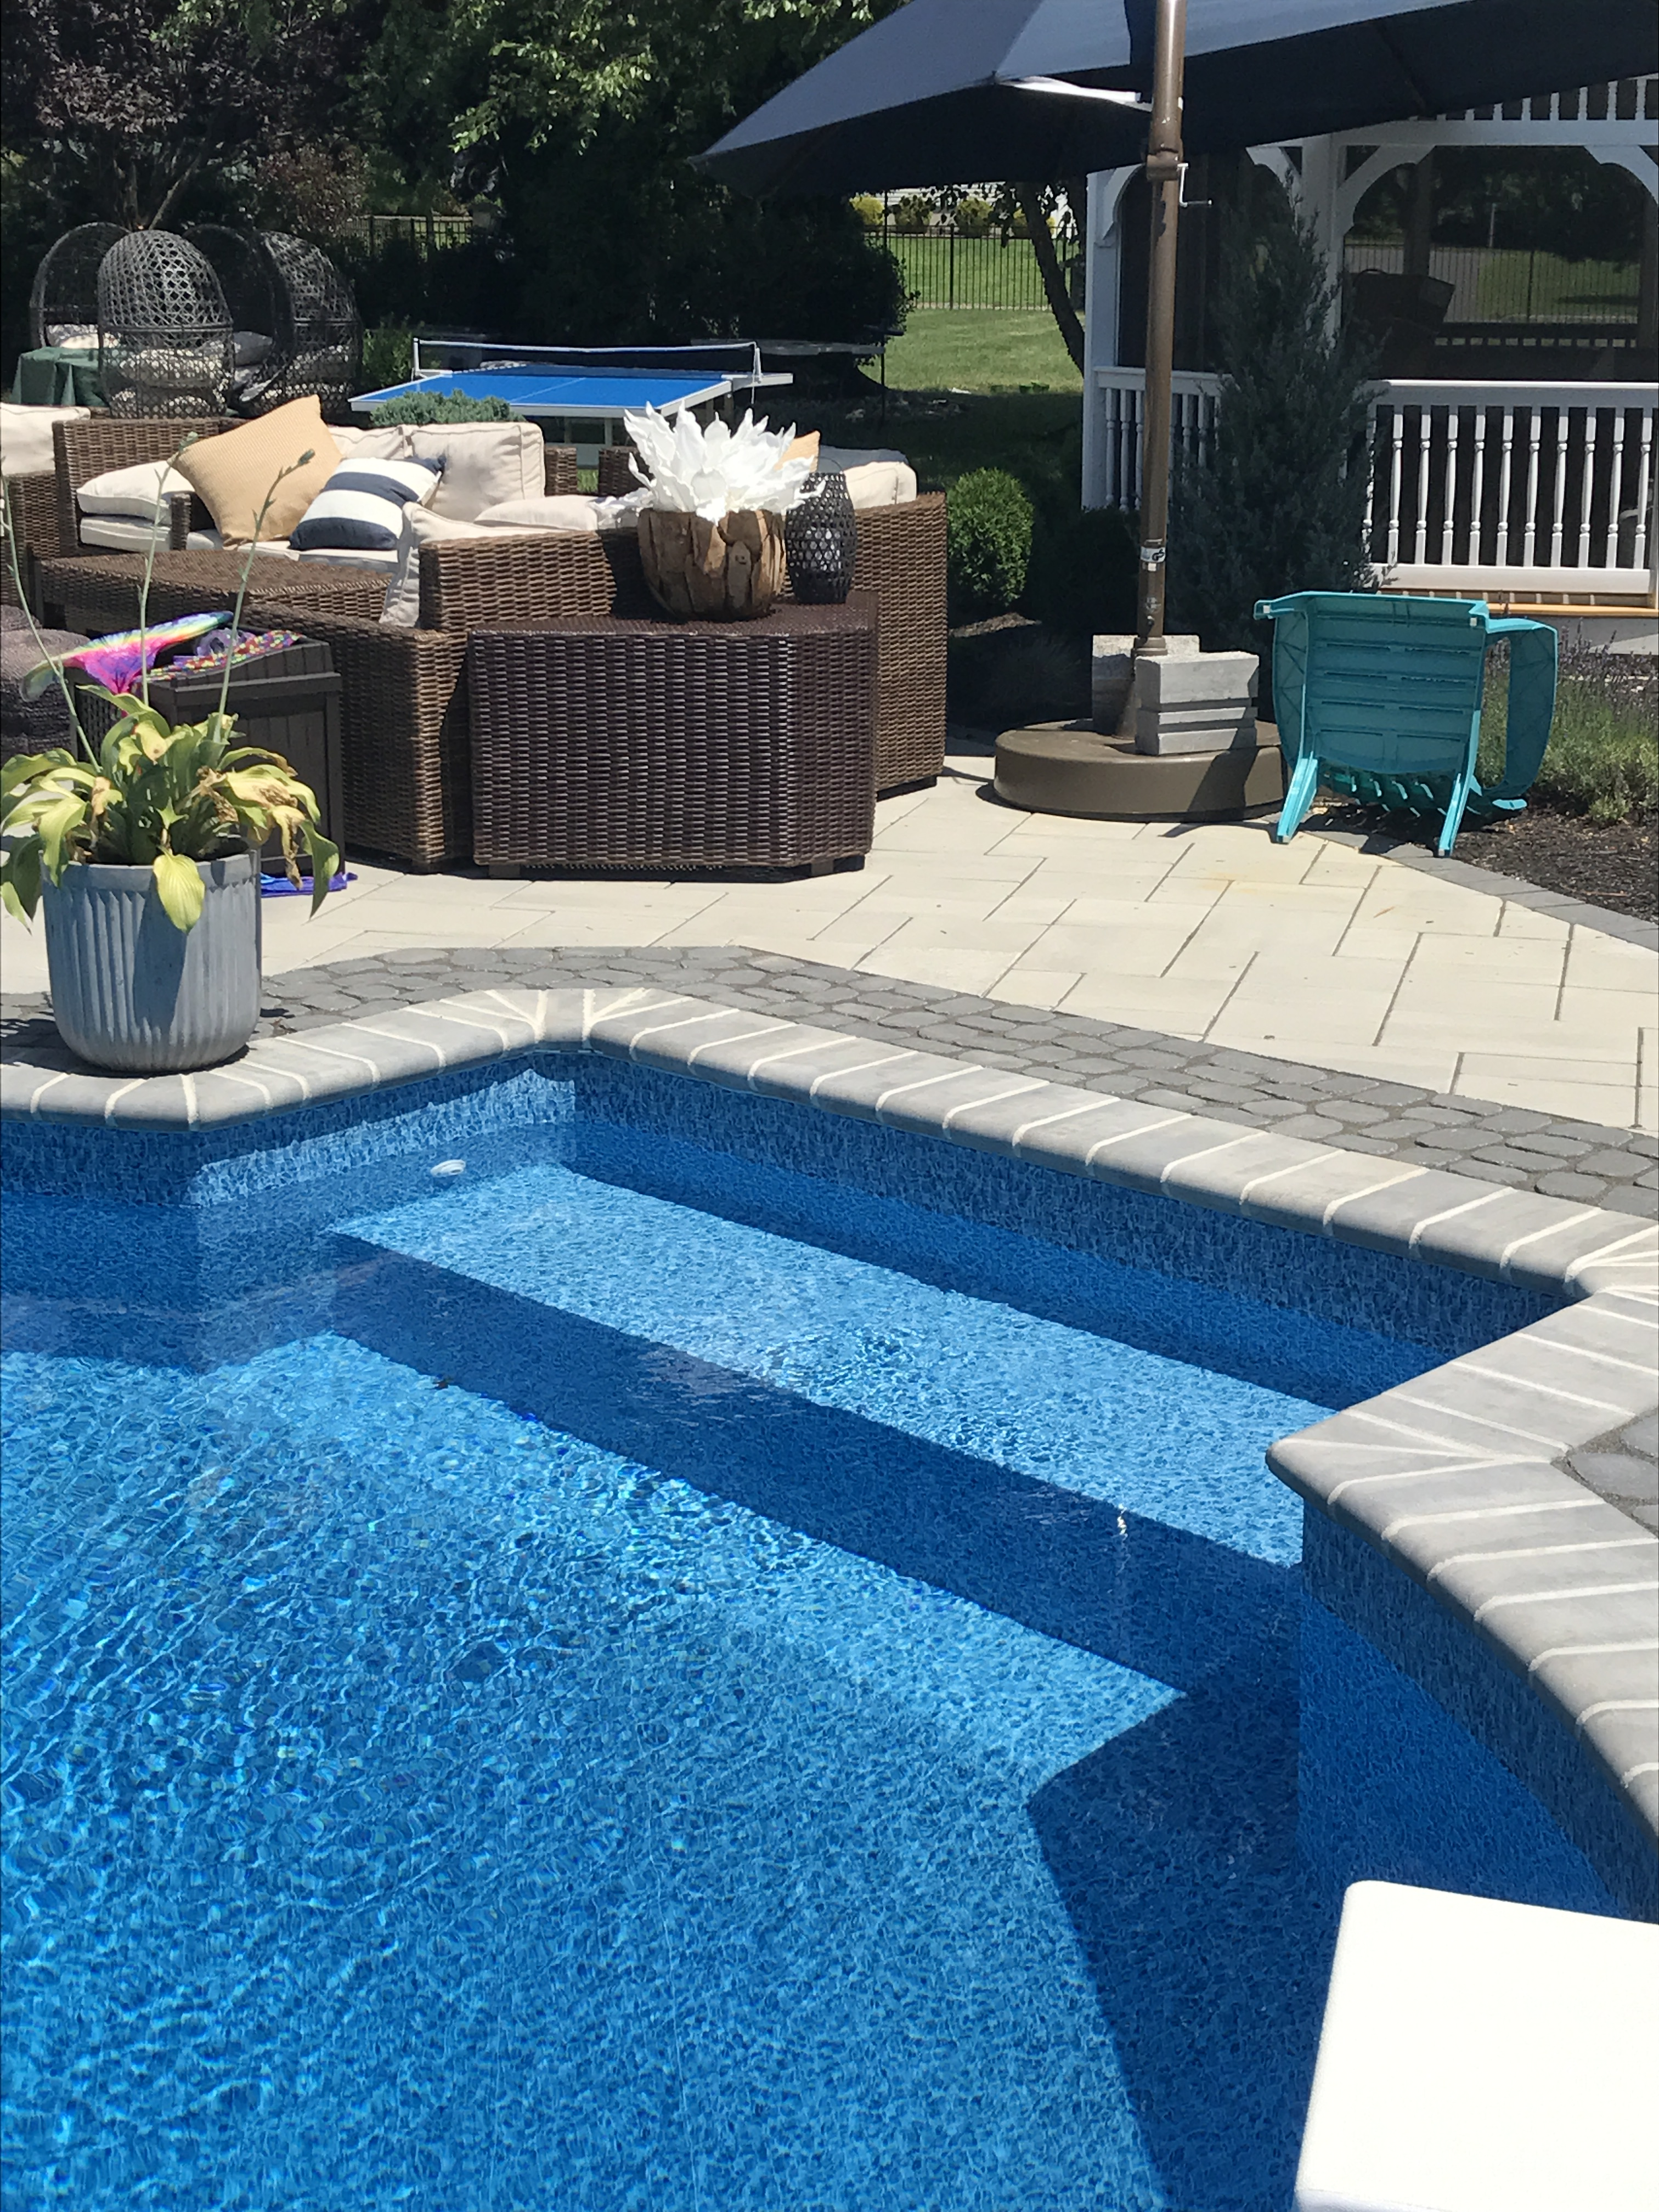 Pool Benches In Pool Seating Offshore Pools Ocean